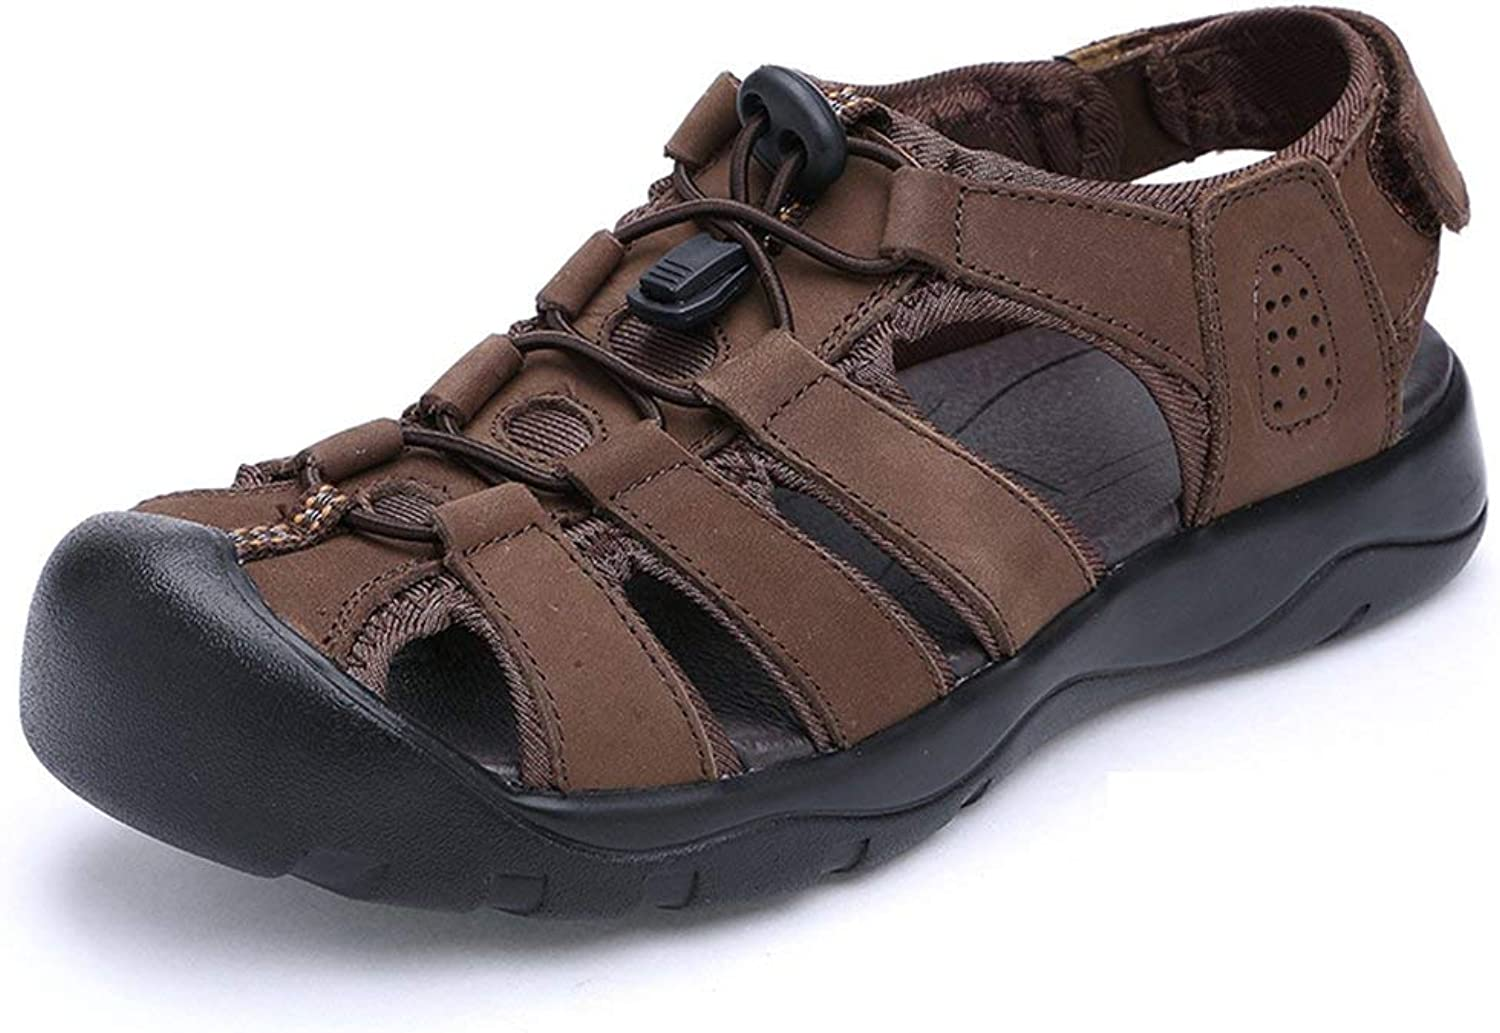 Hhgold Mens Comfortable and Non-Slip Leather Sandals Summer Fashion Closed-Toe Beach shoes (color   Brown, Size   6 UK)